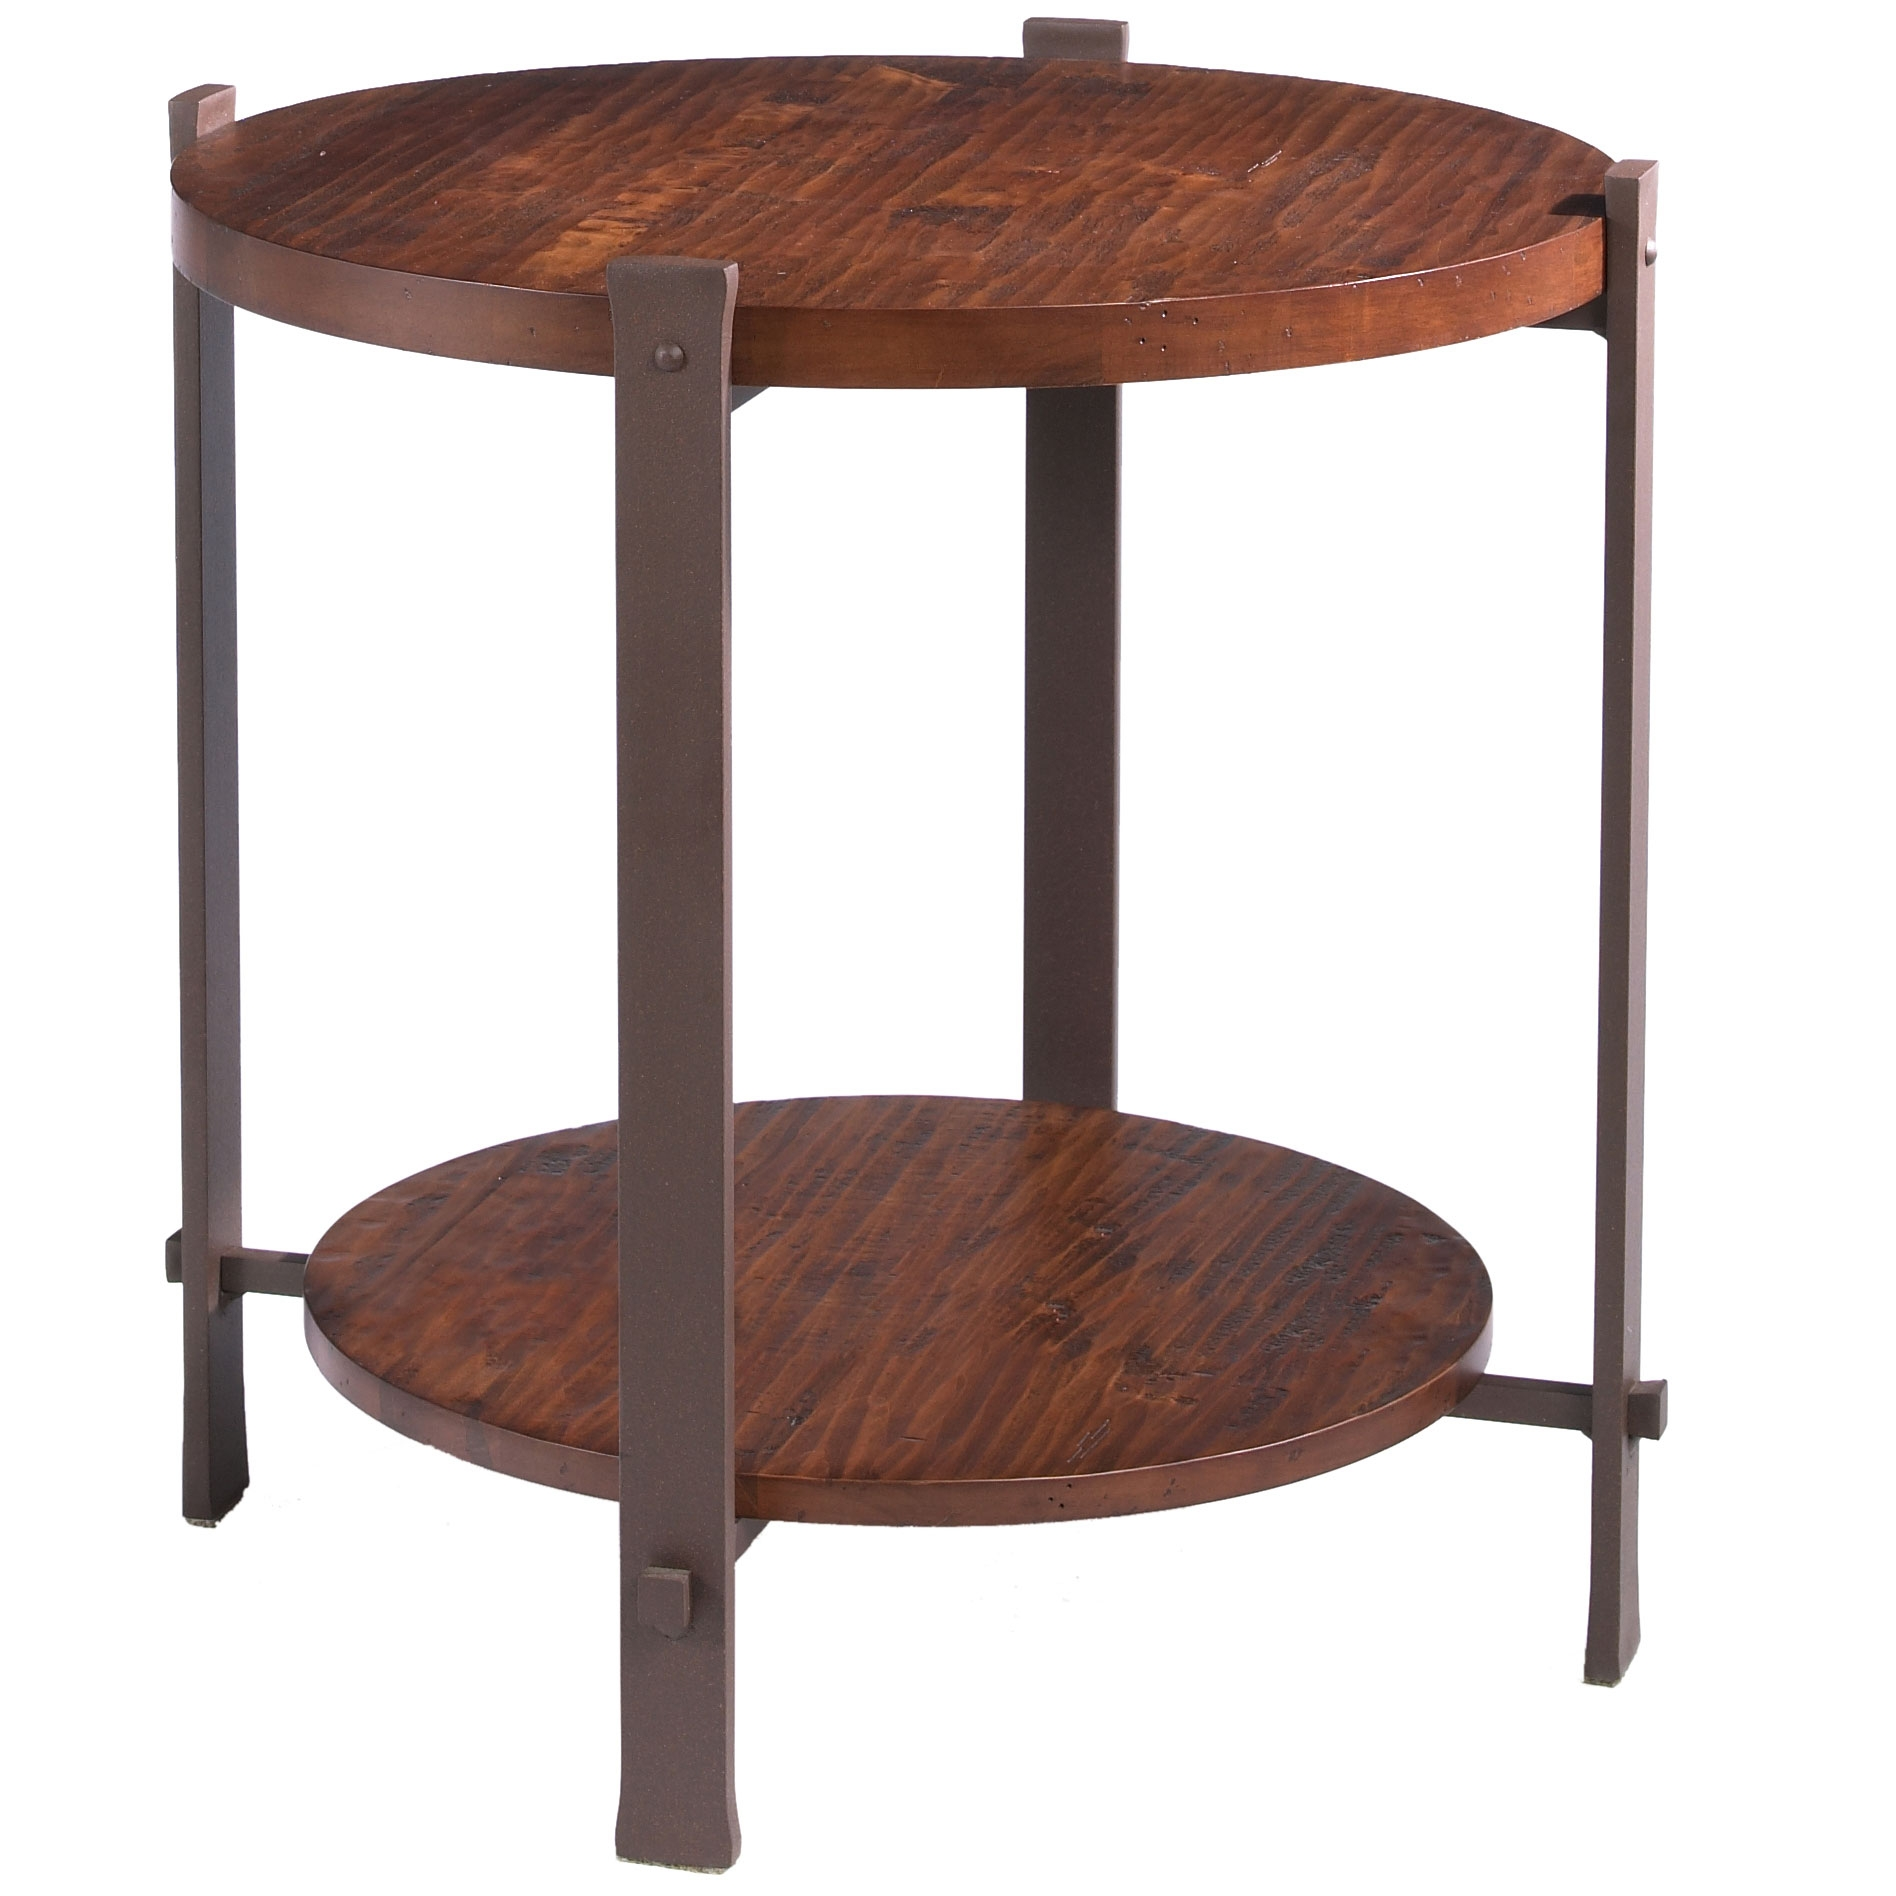 Wrought Iron And Wood End Tables Pictured Is The Wrought Iron Framed Timber Round End Table